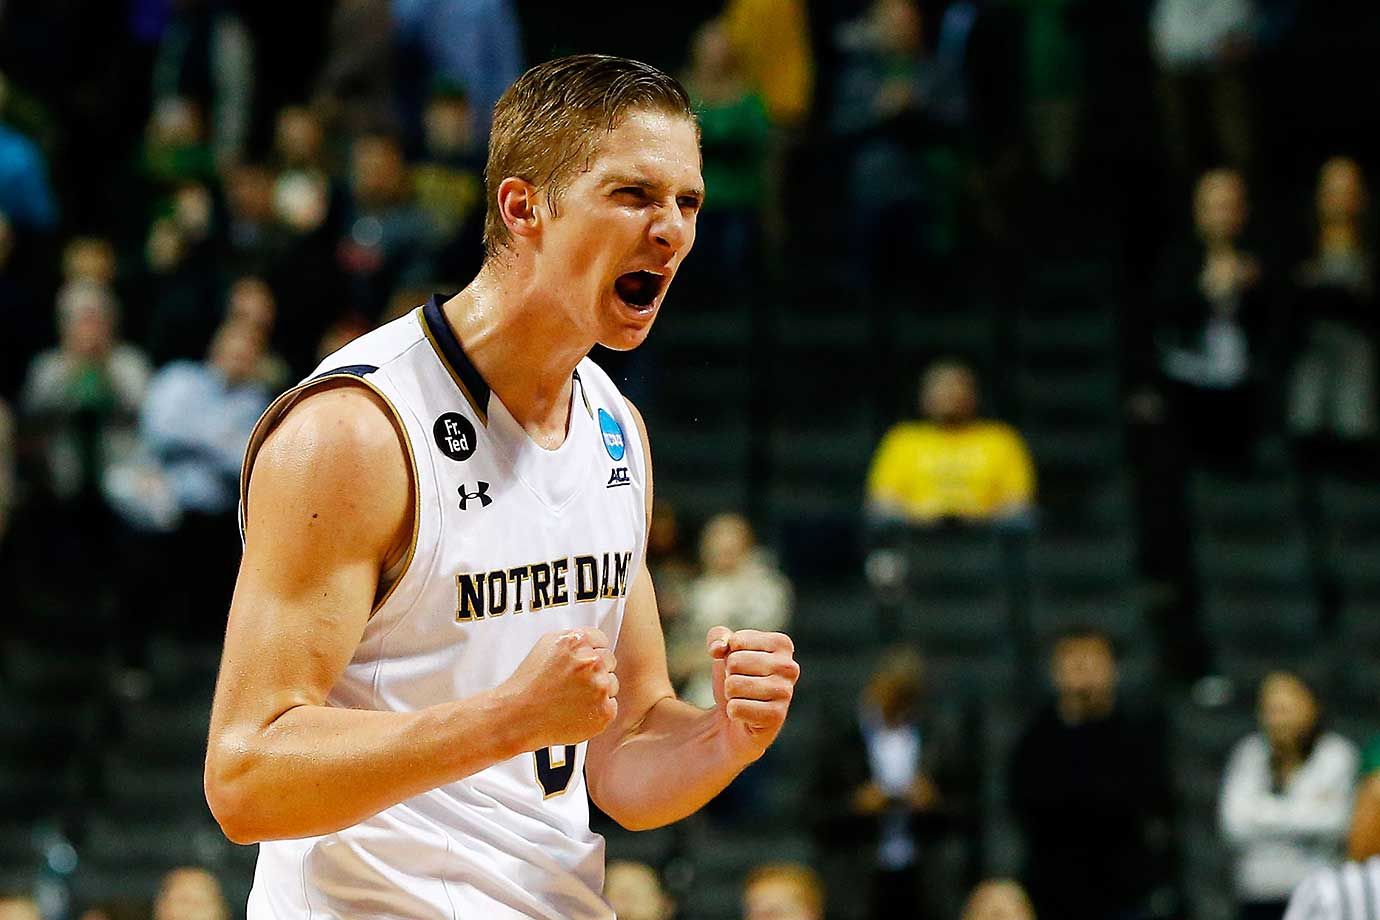 Rex Pflueger of the Notre Dame Fighting Irish celebrates a 70-63 win over the Michigan Wolverines.